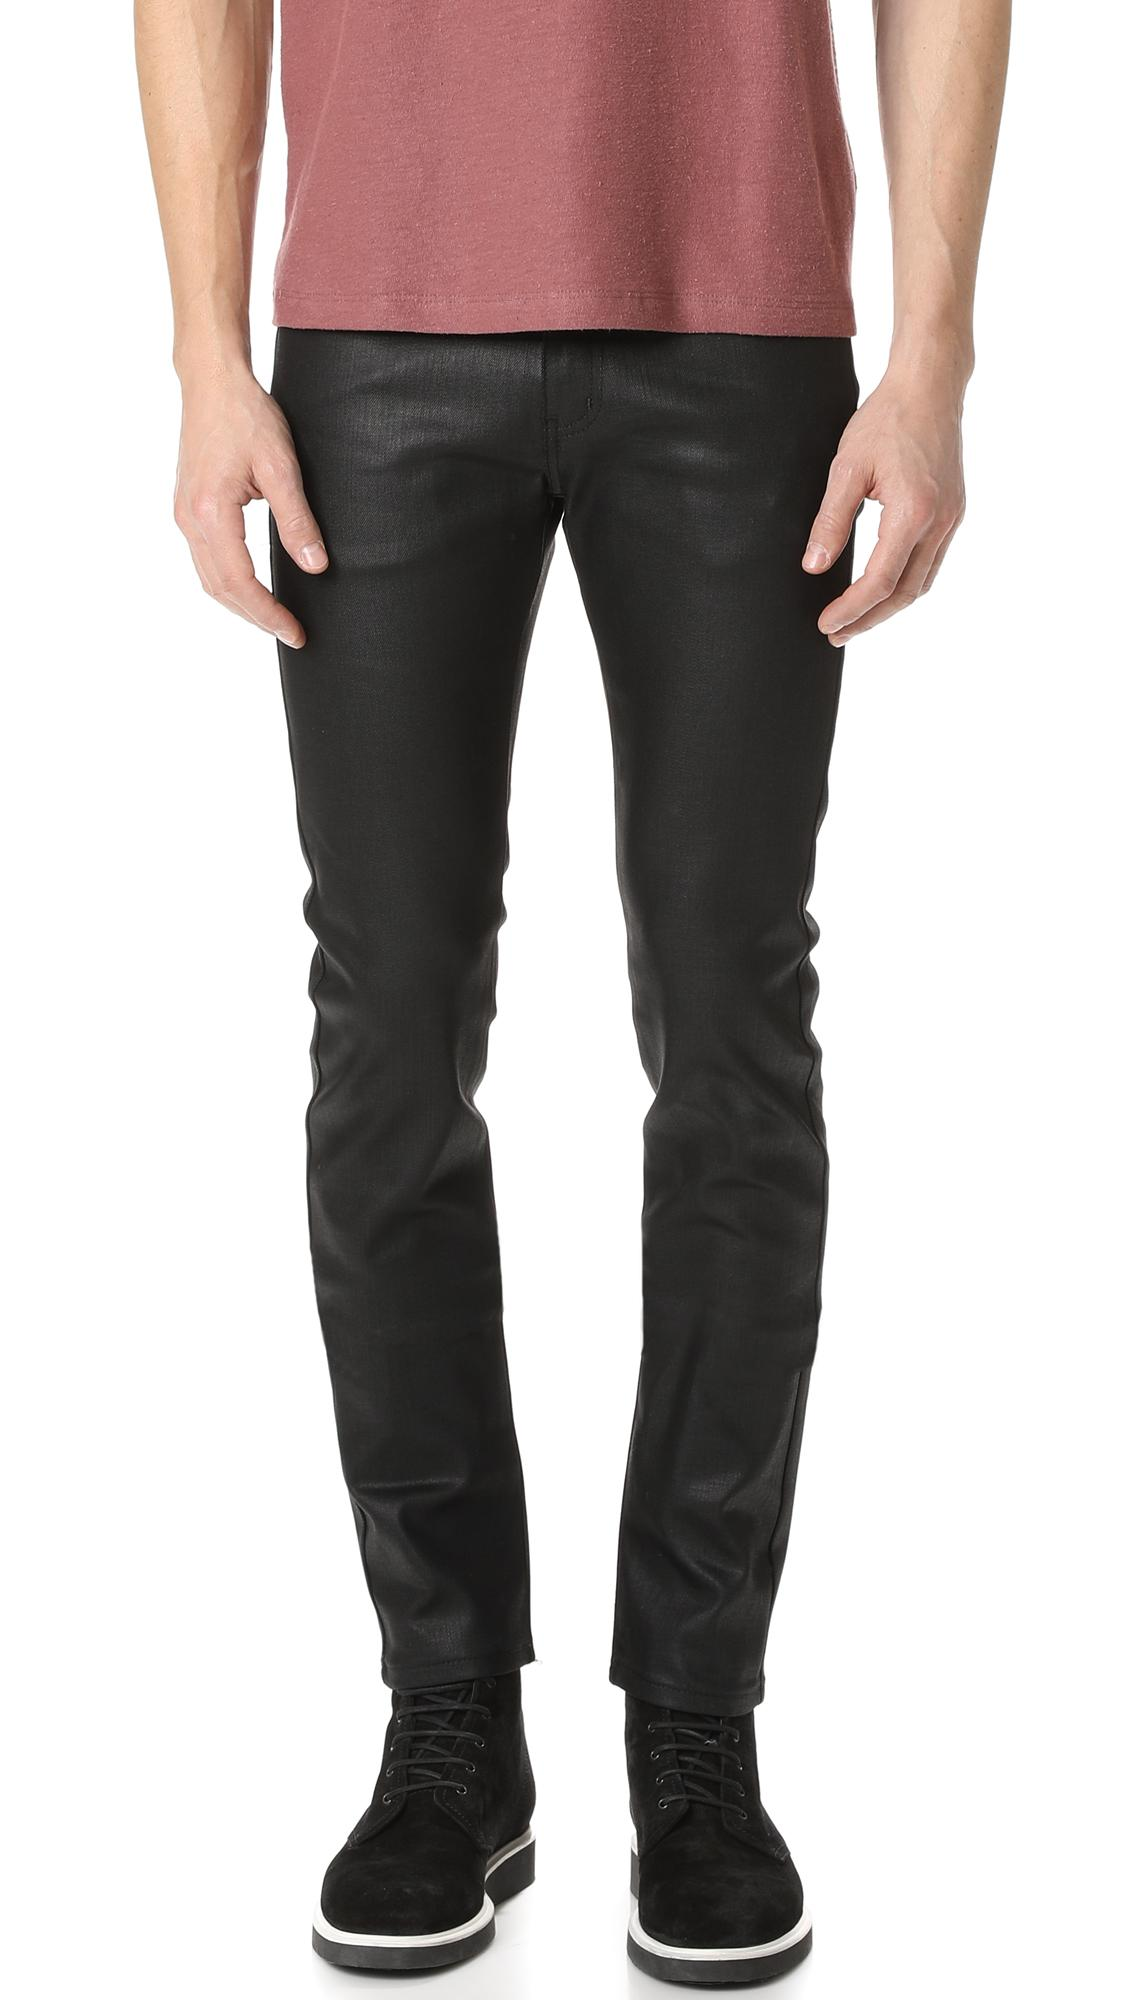 comfoisinsi.tk: waxed denim jeans. From The Community. Amazon Try Prime All Men's Vintage Black Waxed Skinny Fit Biker Moto Wash Denim Trousers Jeans. by OKilr Pjik. $ $ 68 FREE Shipping on eligible orders. Mens Jewel House Waxed Denim Jeans Olive. by .